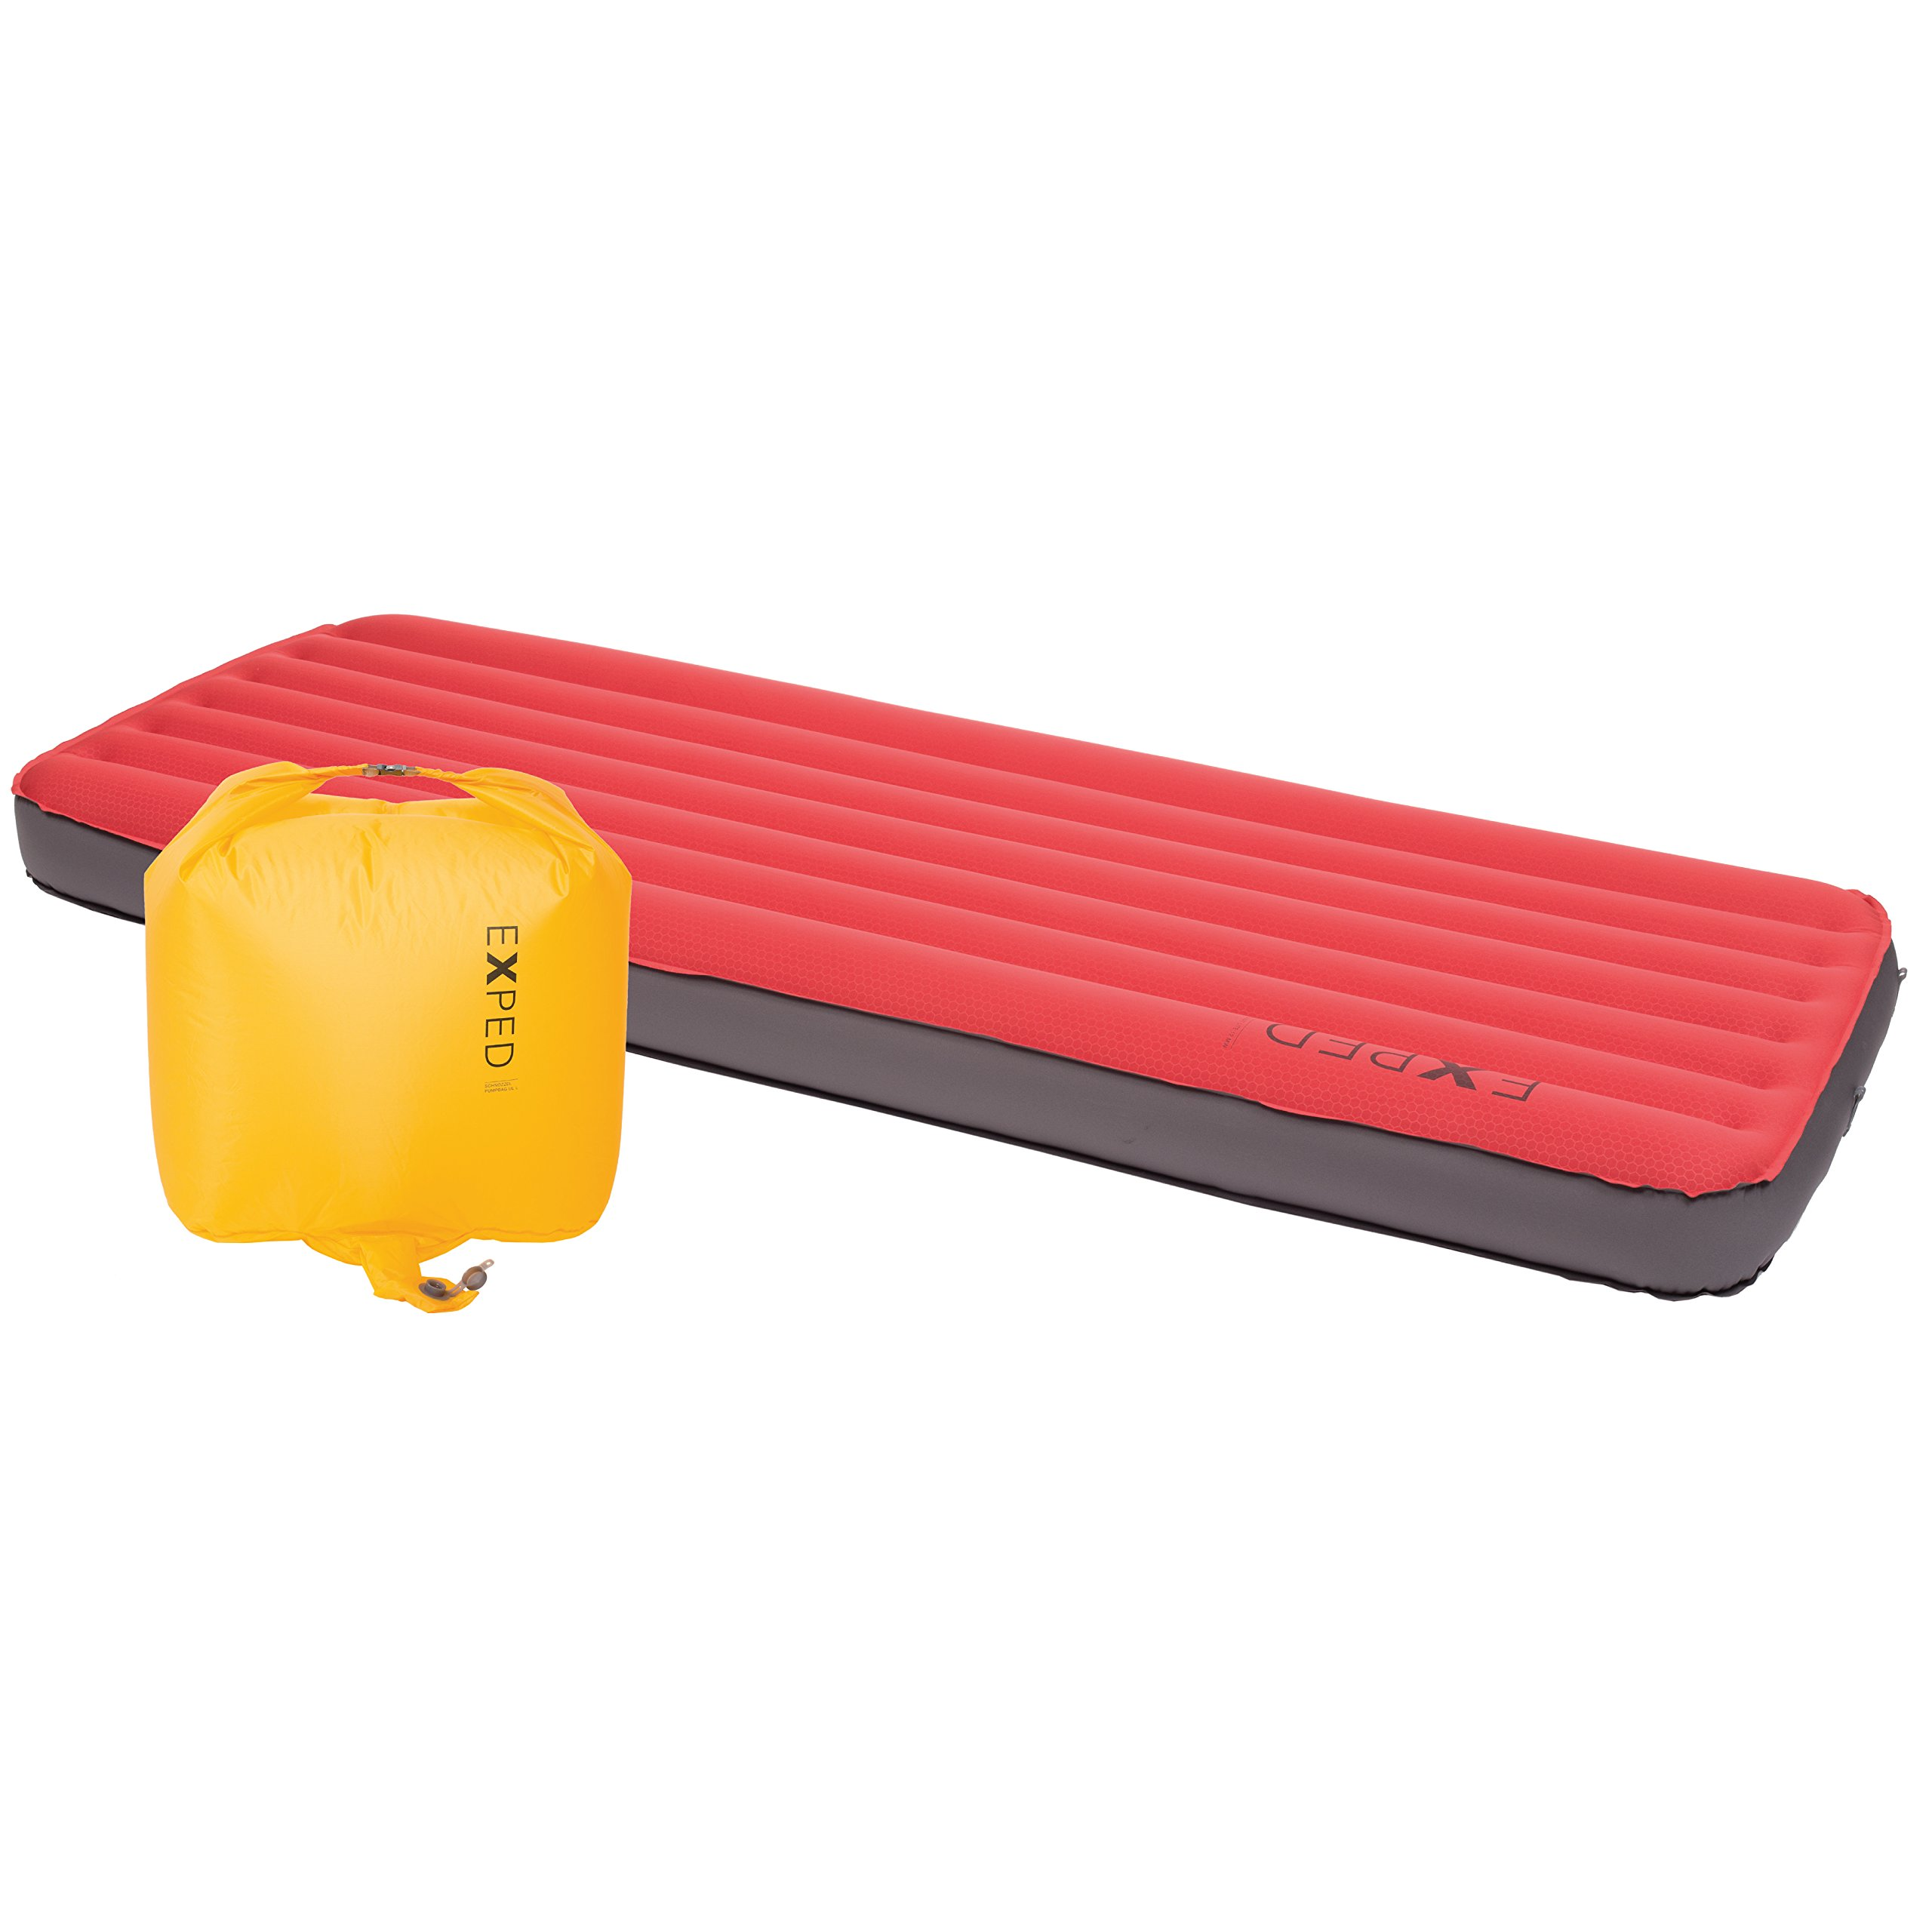 Exped MegaMat Lite 12 Sleeping Pad, Ruby Red, Medium Wide by Exped